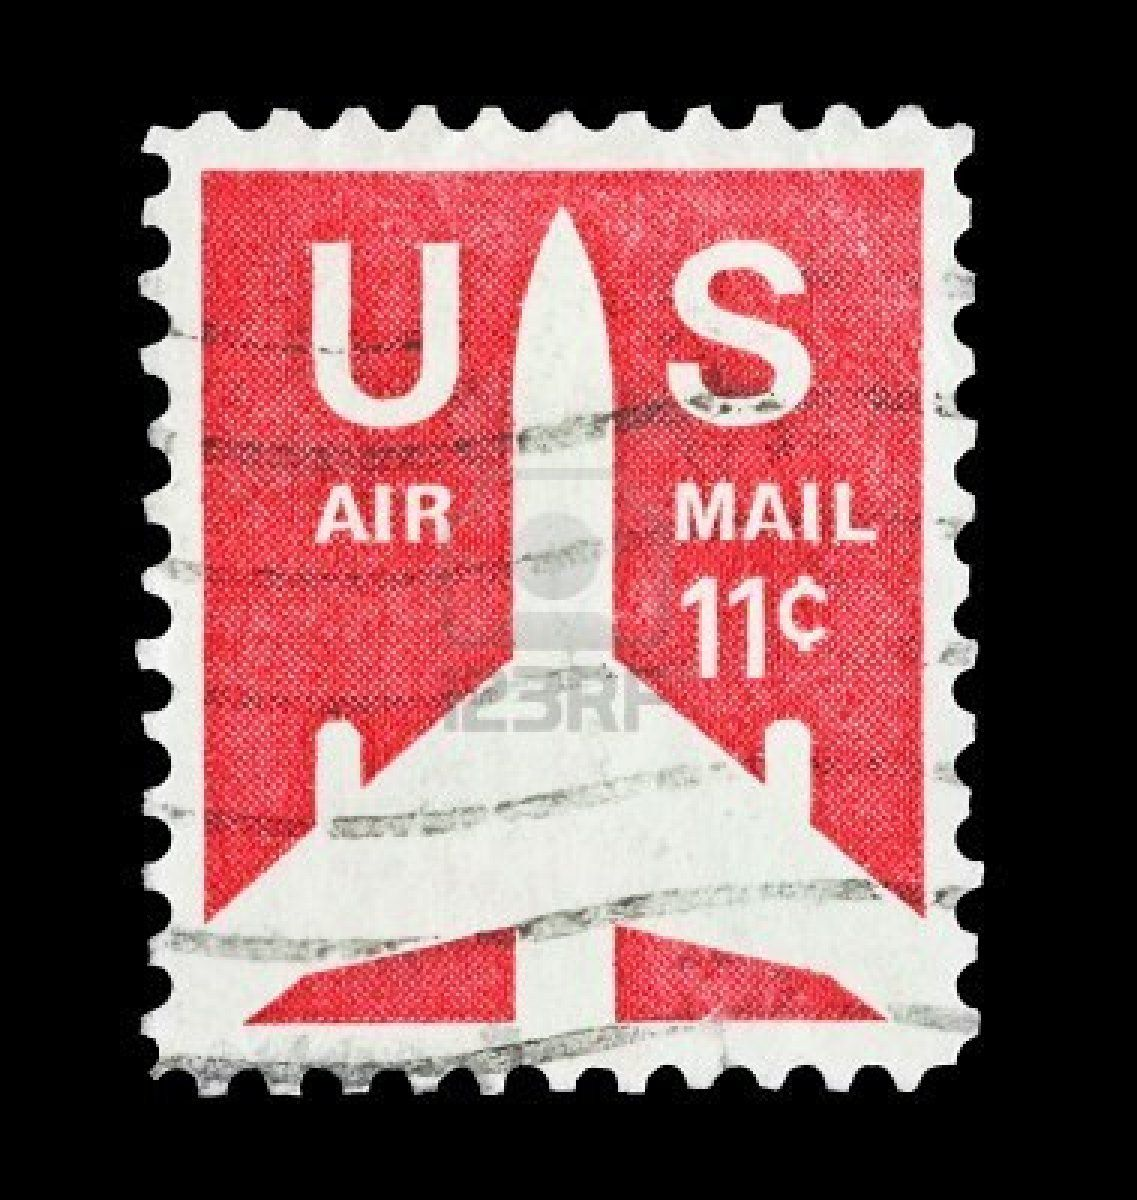 USA featuring aircraft silouette US airmail